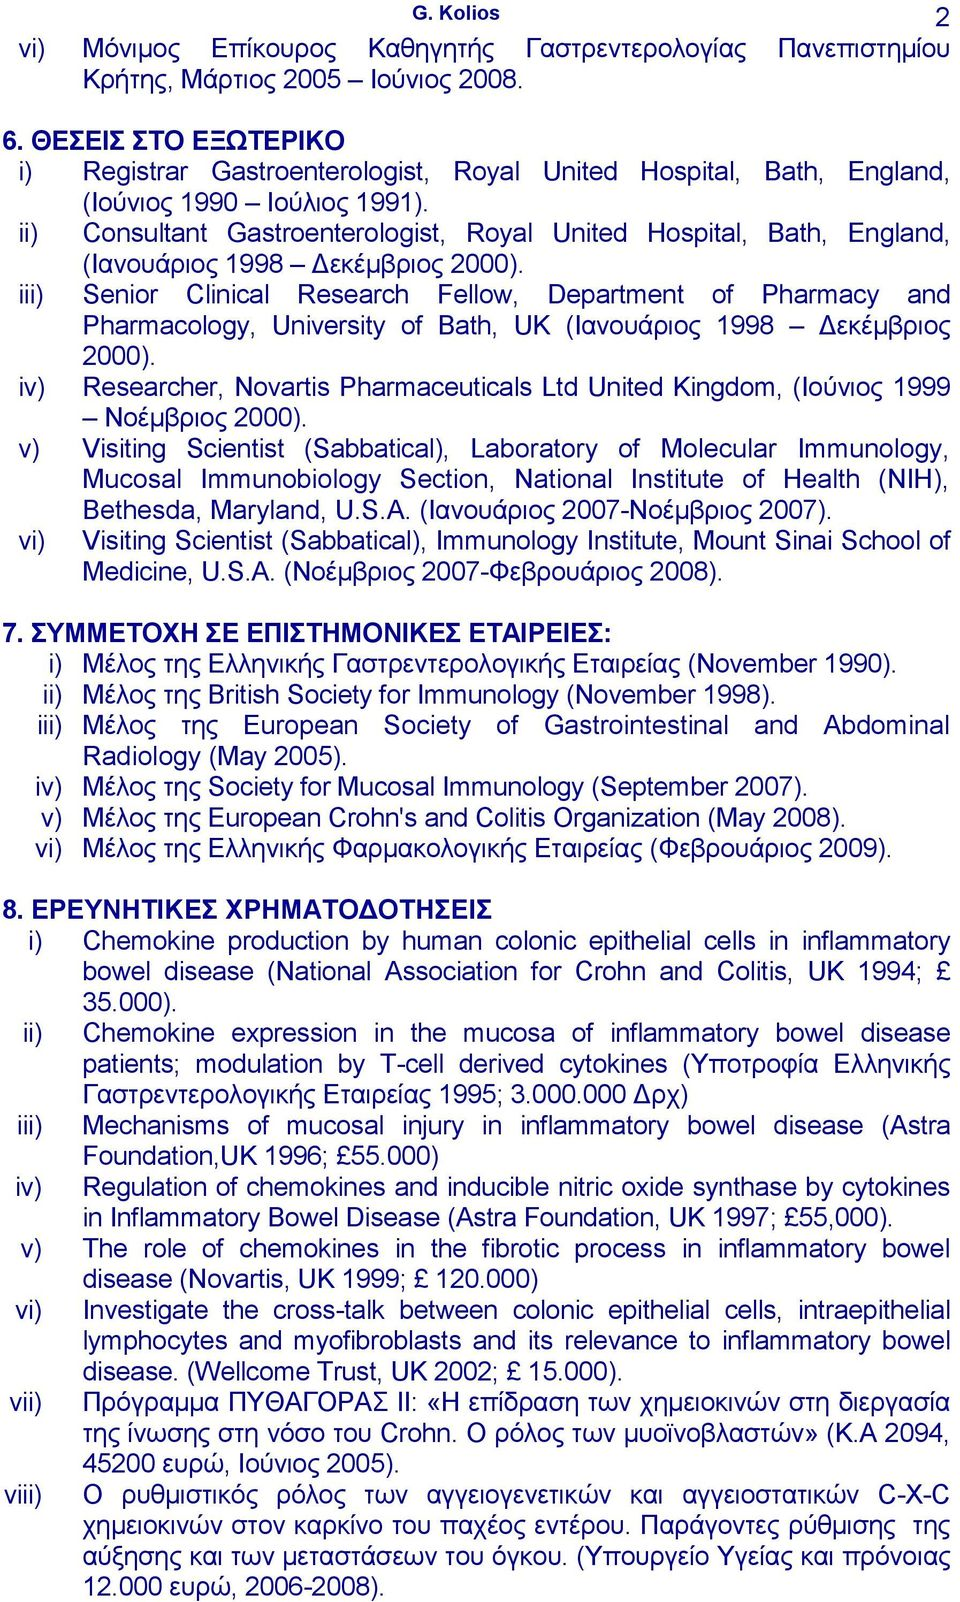 ii) Consultant Gastroenterologist, Royal United Hospital, Bath, England, (Ιανουάριος 1998 Δεκέμβριος 2000).